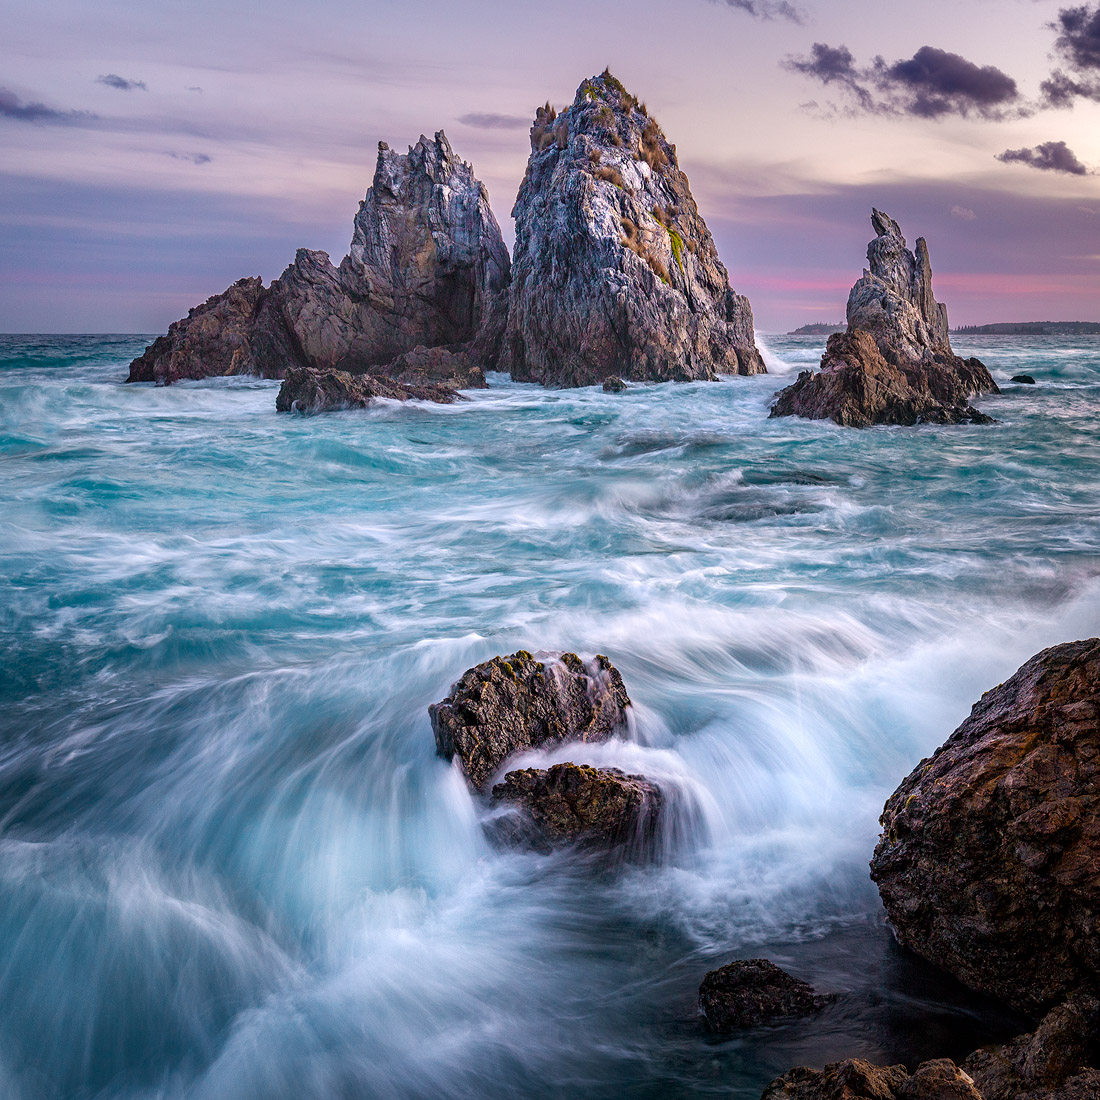 The dynamic chaos of Bermagui's Camel Rock